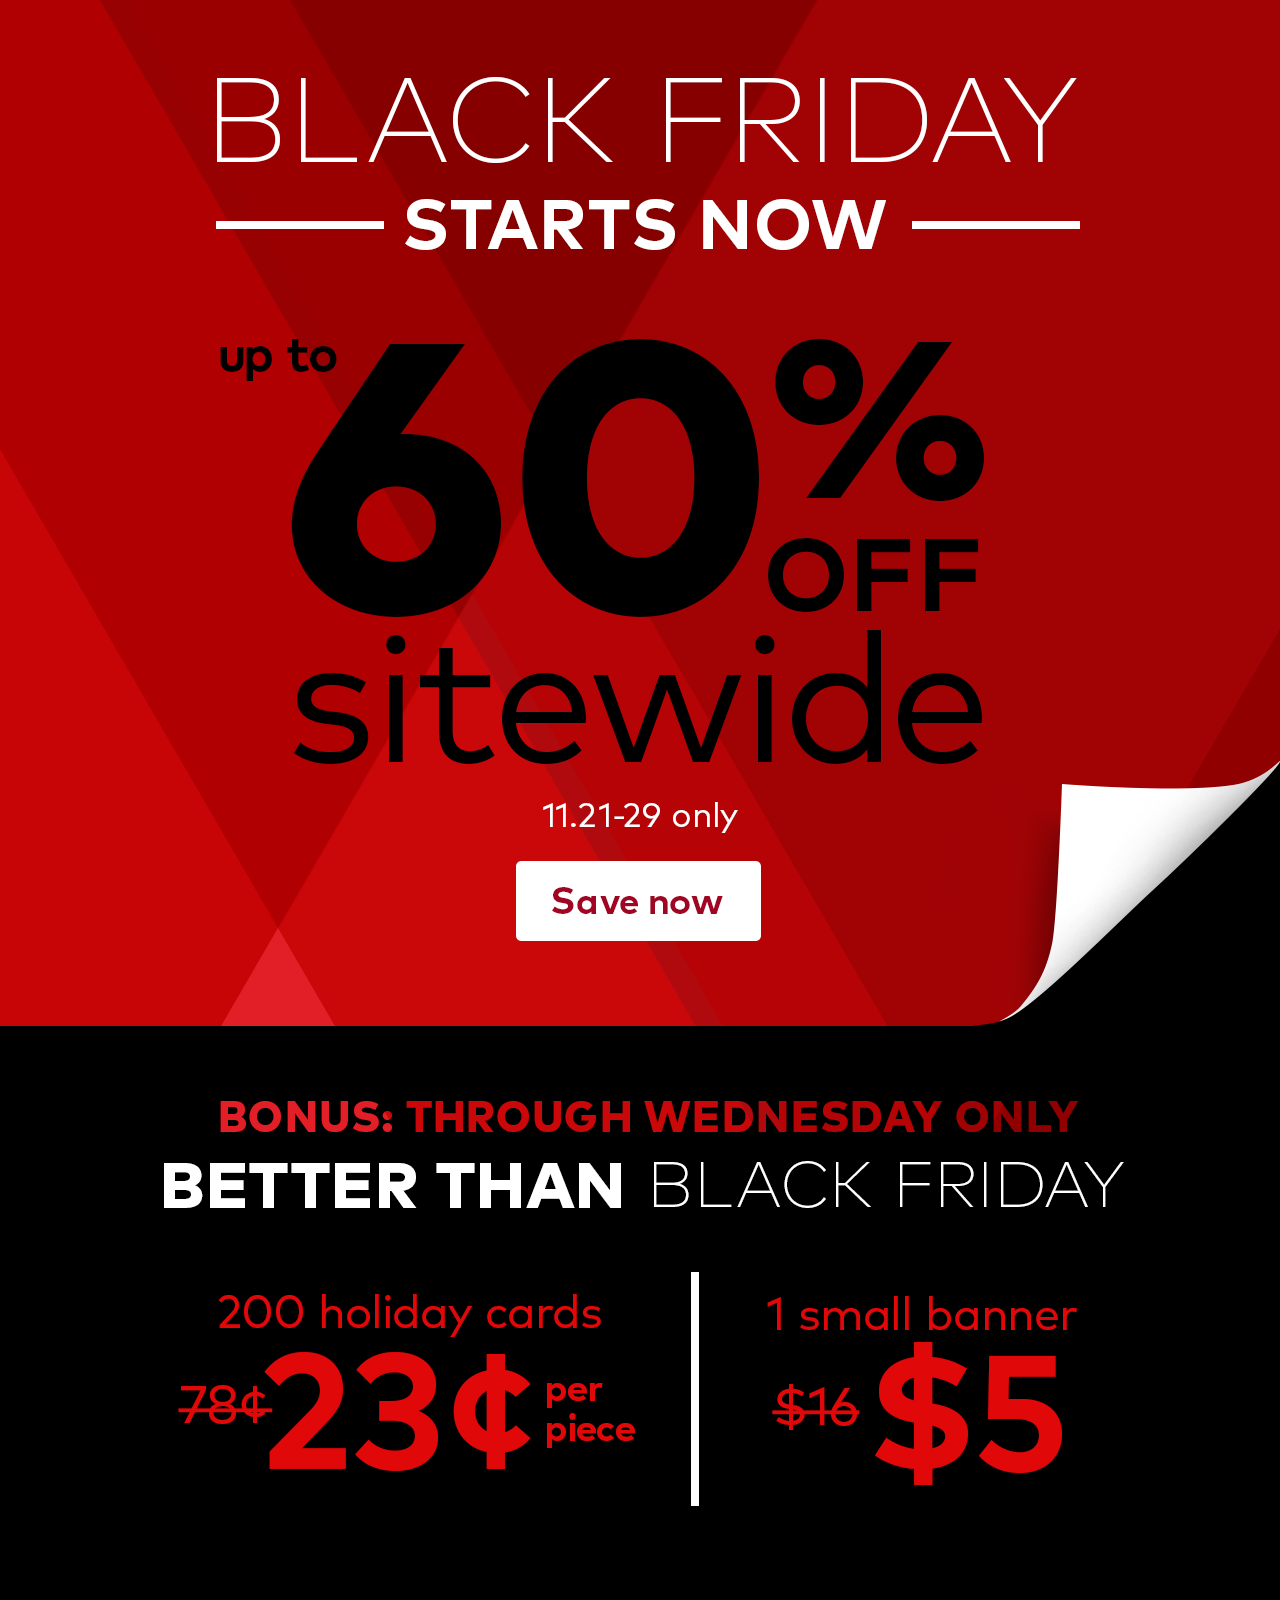 vistaprint ☷ black friday begins early up to 60 off plus